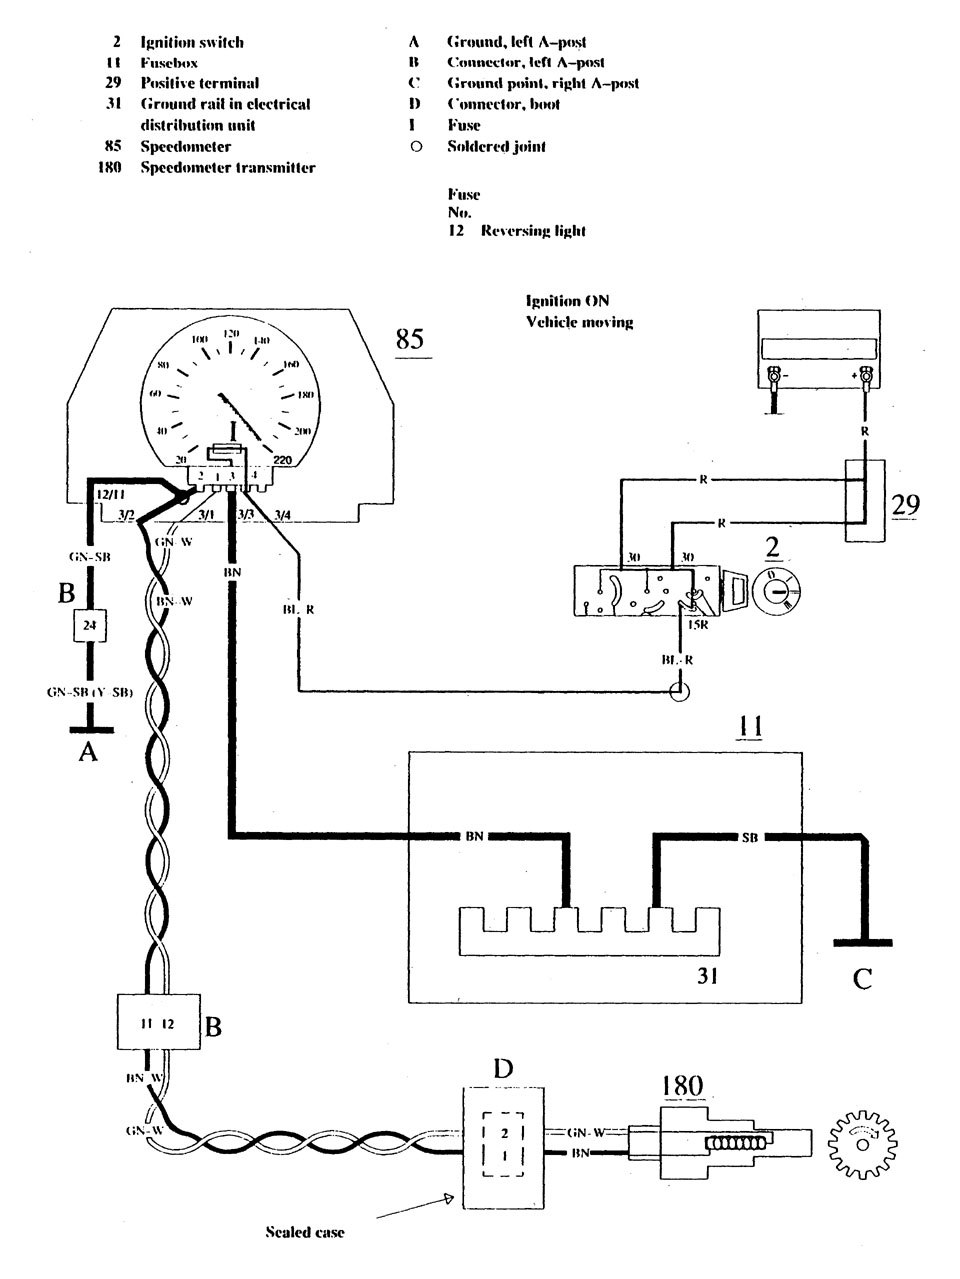 hight resolution of 1991 volvo 740 wiring diagrams wiring schematic diagramwww carknowledge info wp content uploads 2017 05 v